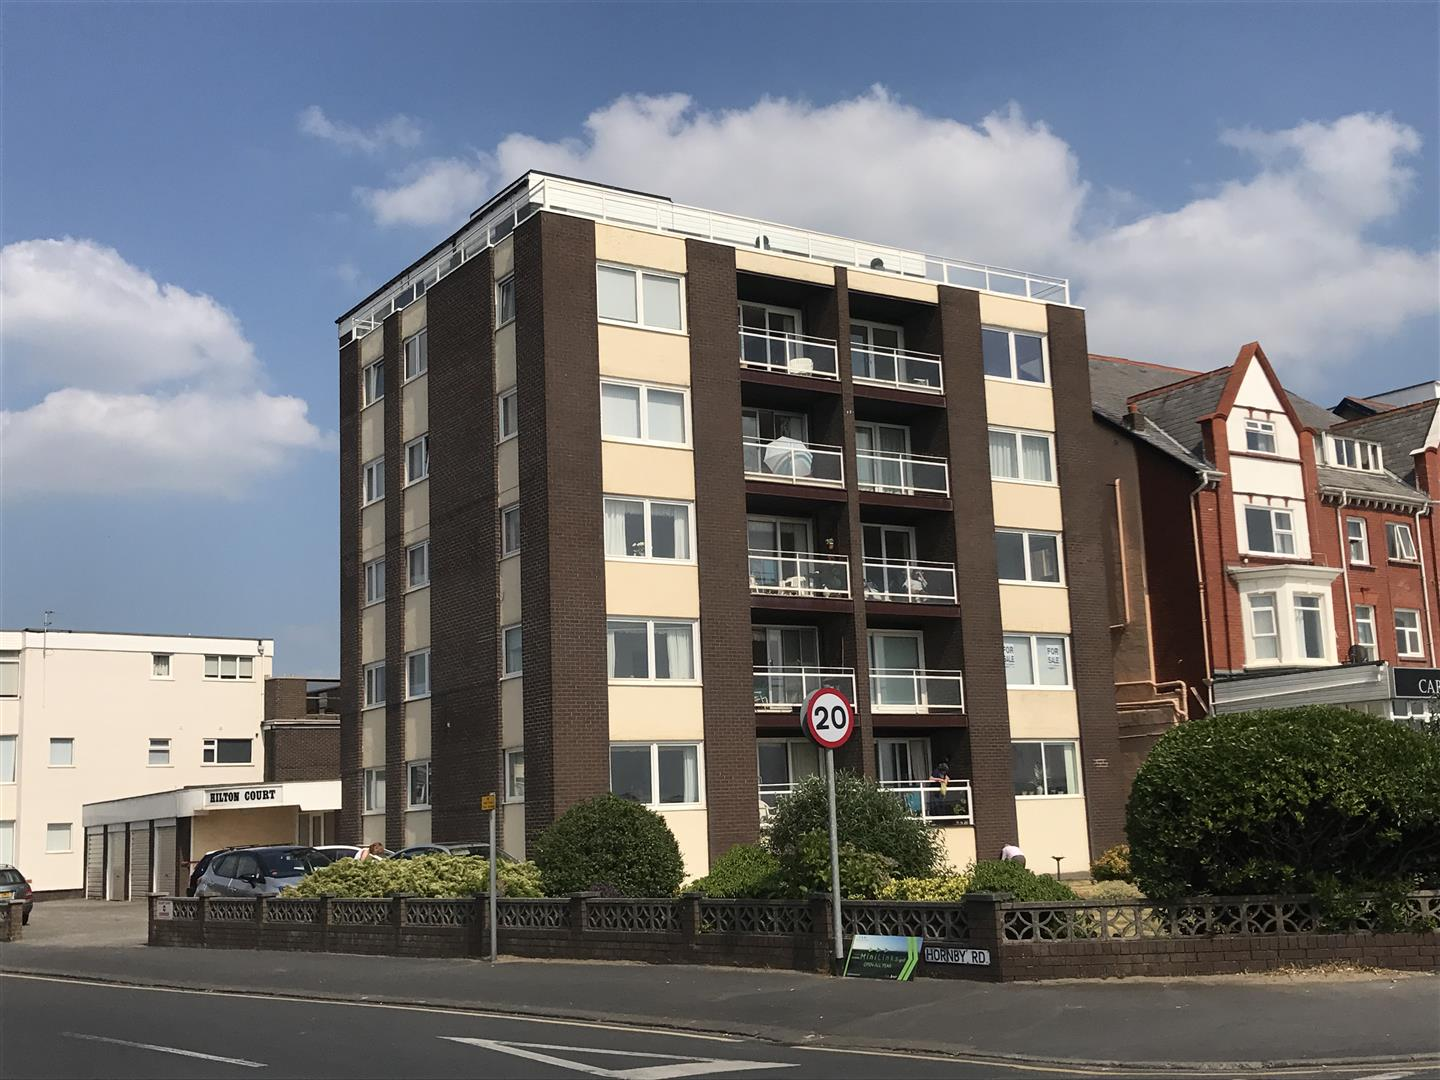 Property for sale in South Promenade, Lytham St. Annes